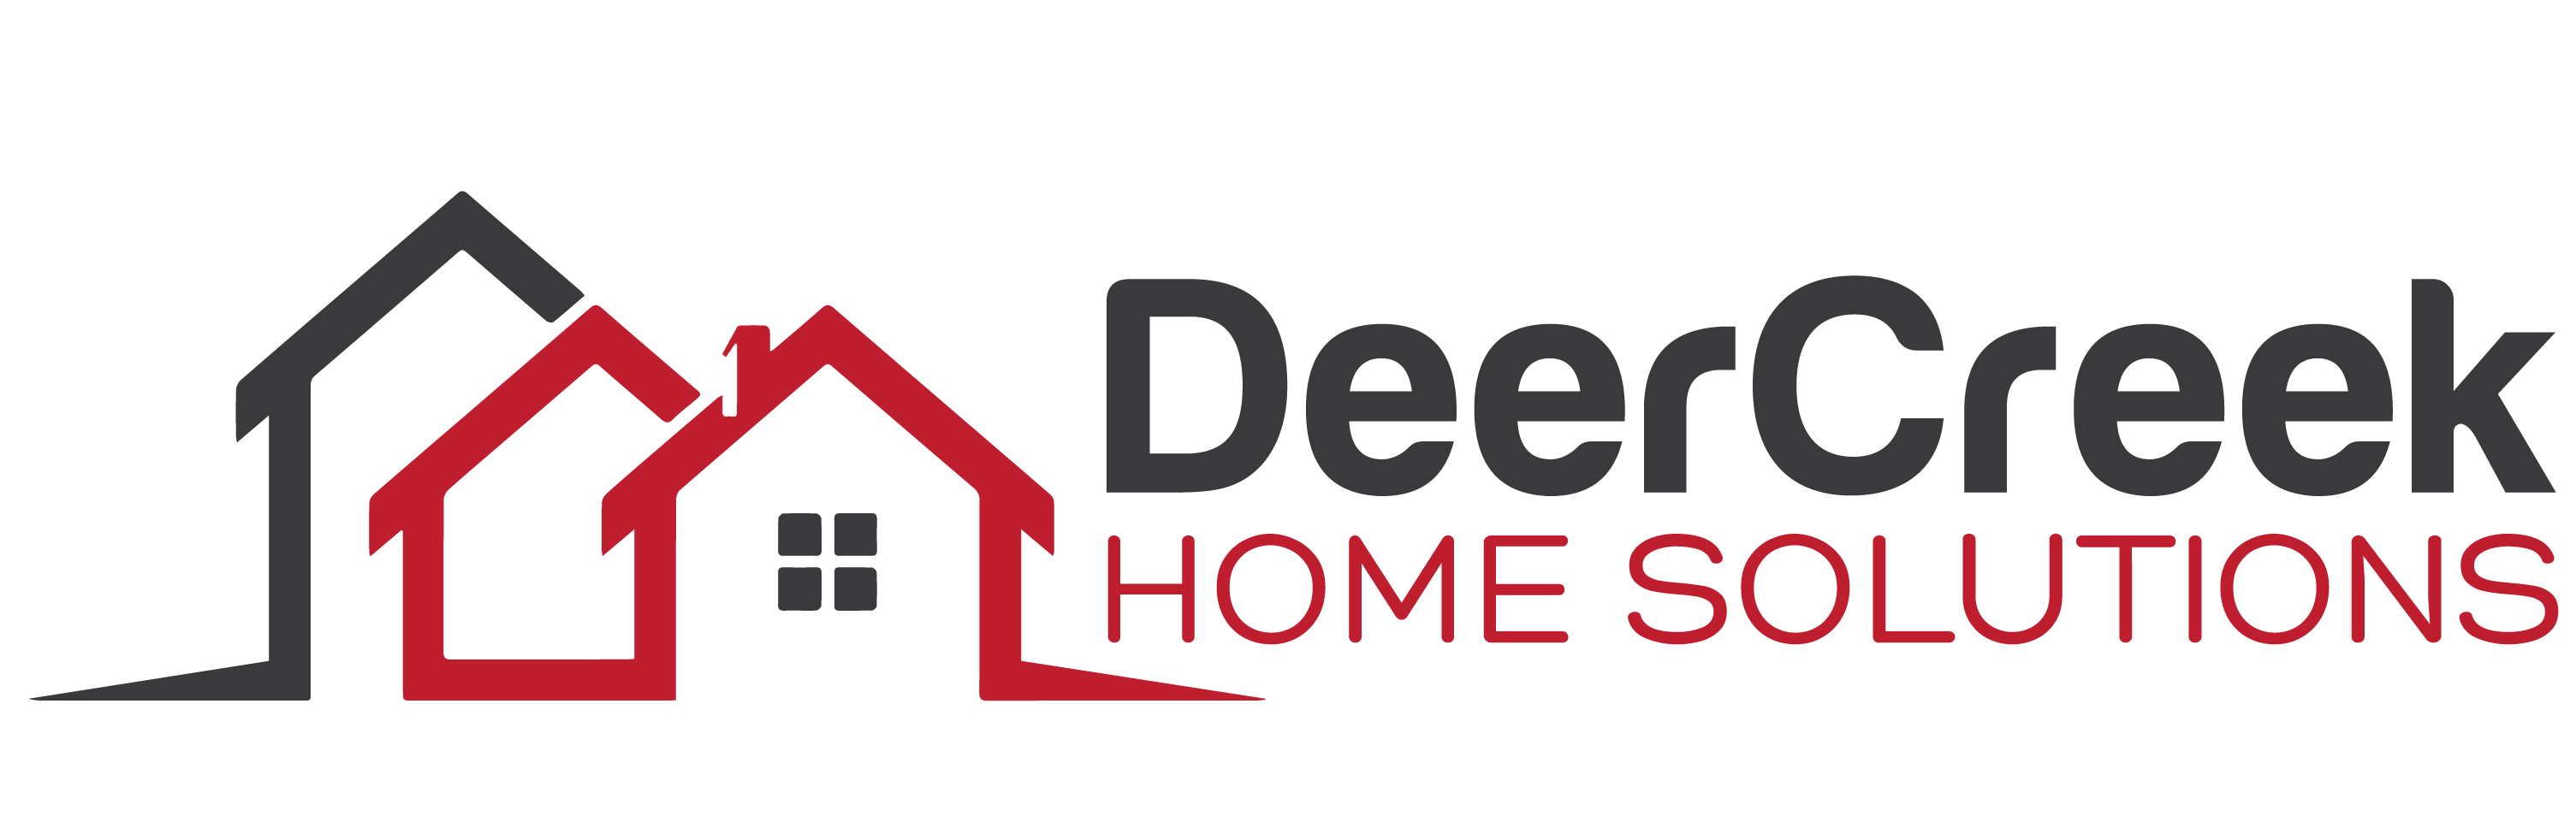 Deercreek Home Solutions